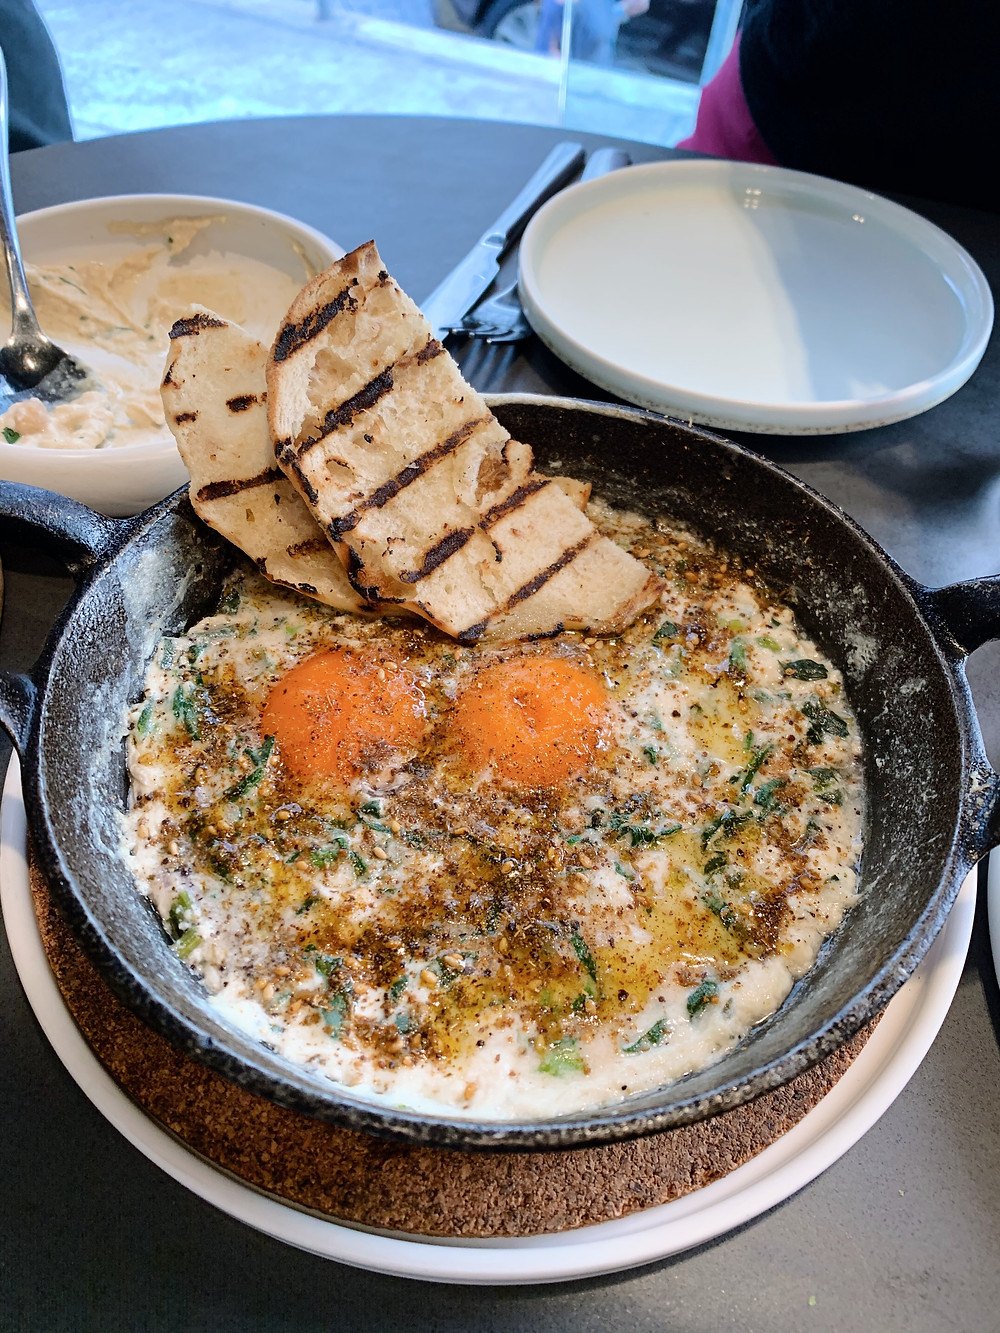 Shakshuka at Francis Middle Eastern restaurant in Wan Chai Hong Kong